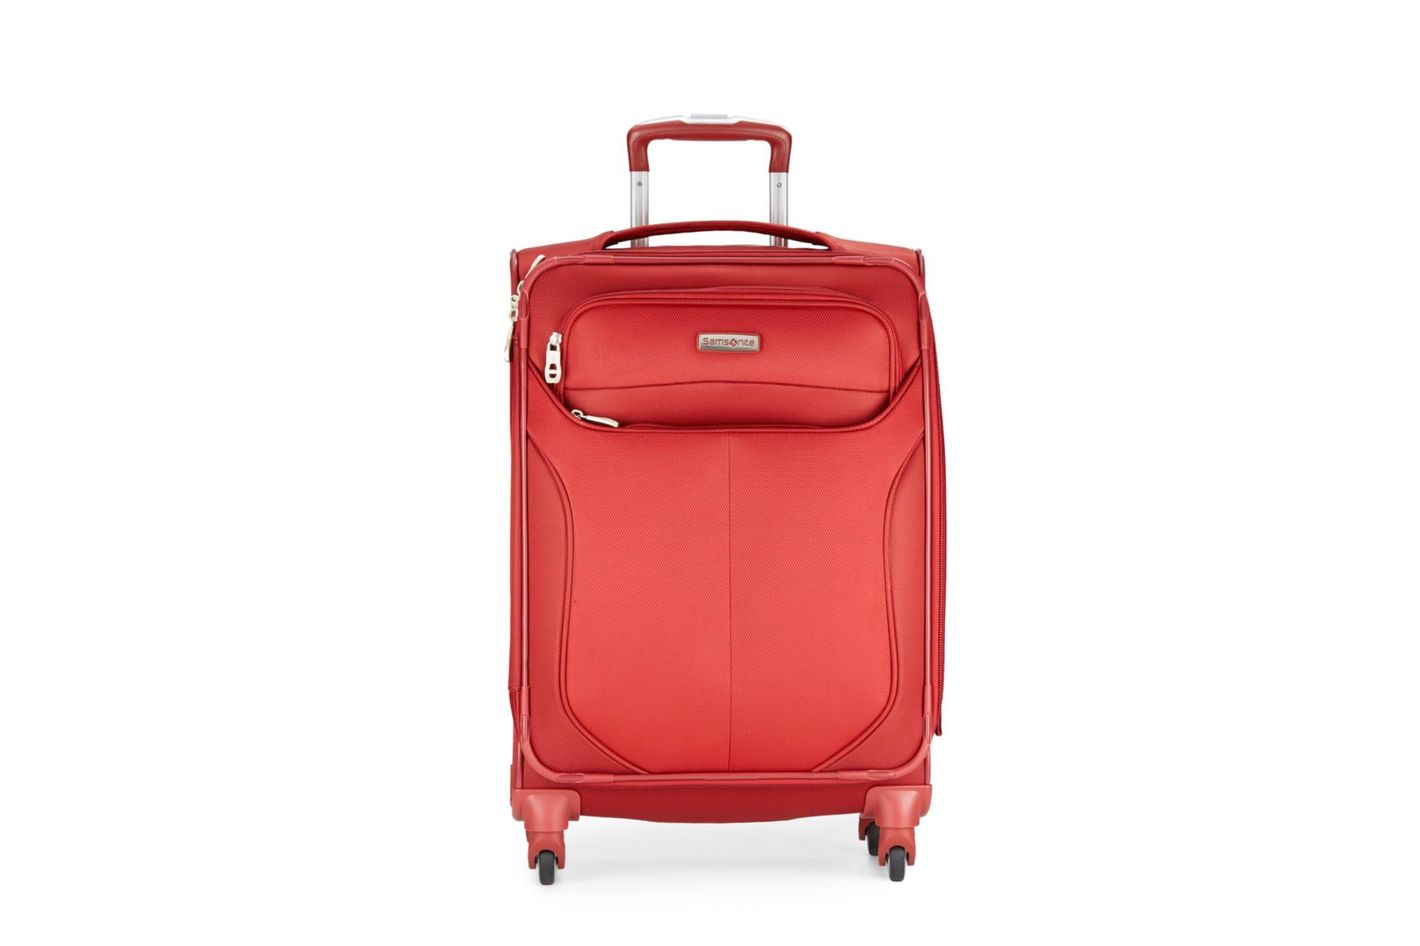 Samsonite 21-Inch Upright Spinner Carry-on